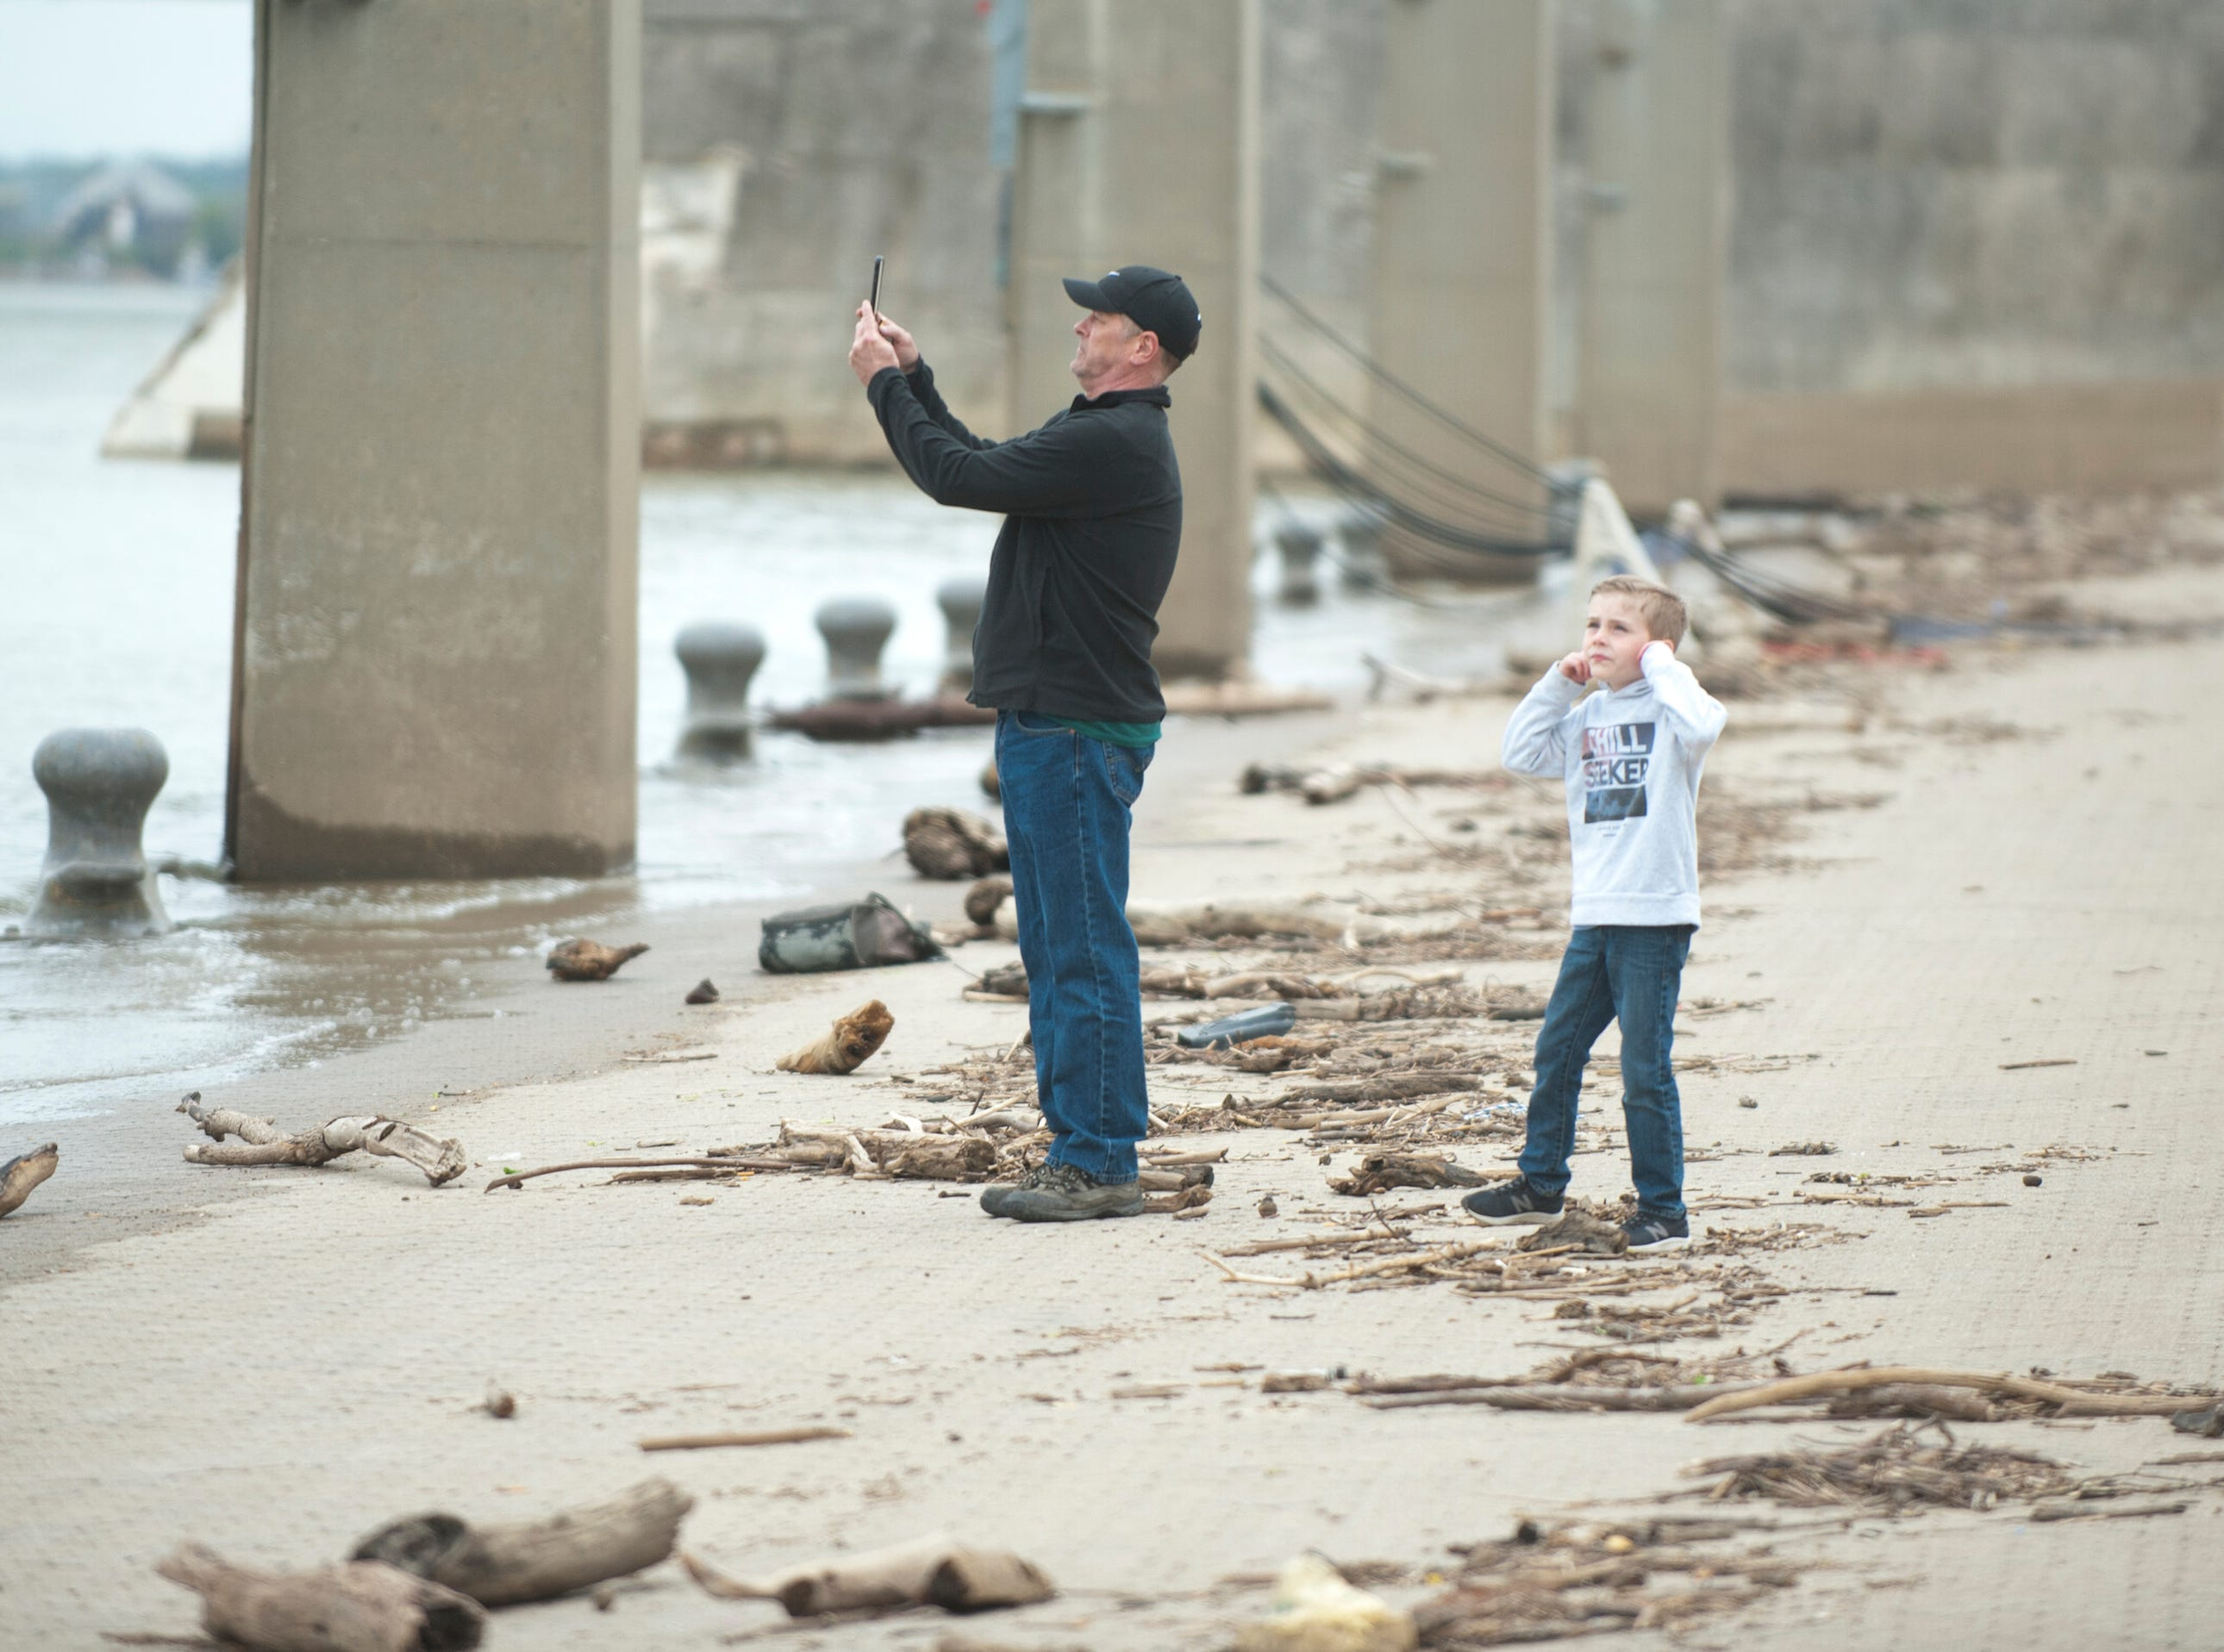 As a pilot above flies along the Ohio River,  Keith Jenkins of Shepherdsville, Ky., photographs it as he and his son, Nolan, age 6 (holding his ears) watch from the wharf between the Belle of Louisville and Joe's Crab Shack. Nolan was reacting to the noise of the plane's jets.12 April 2019